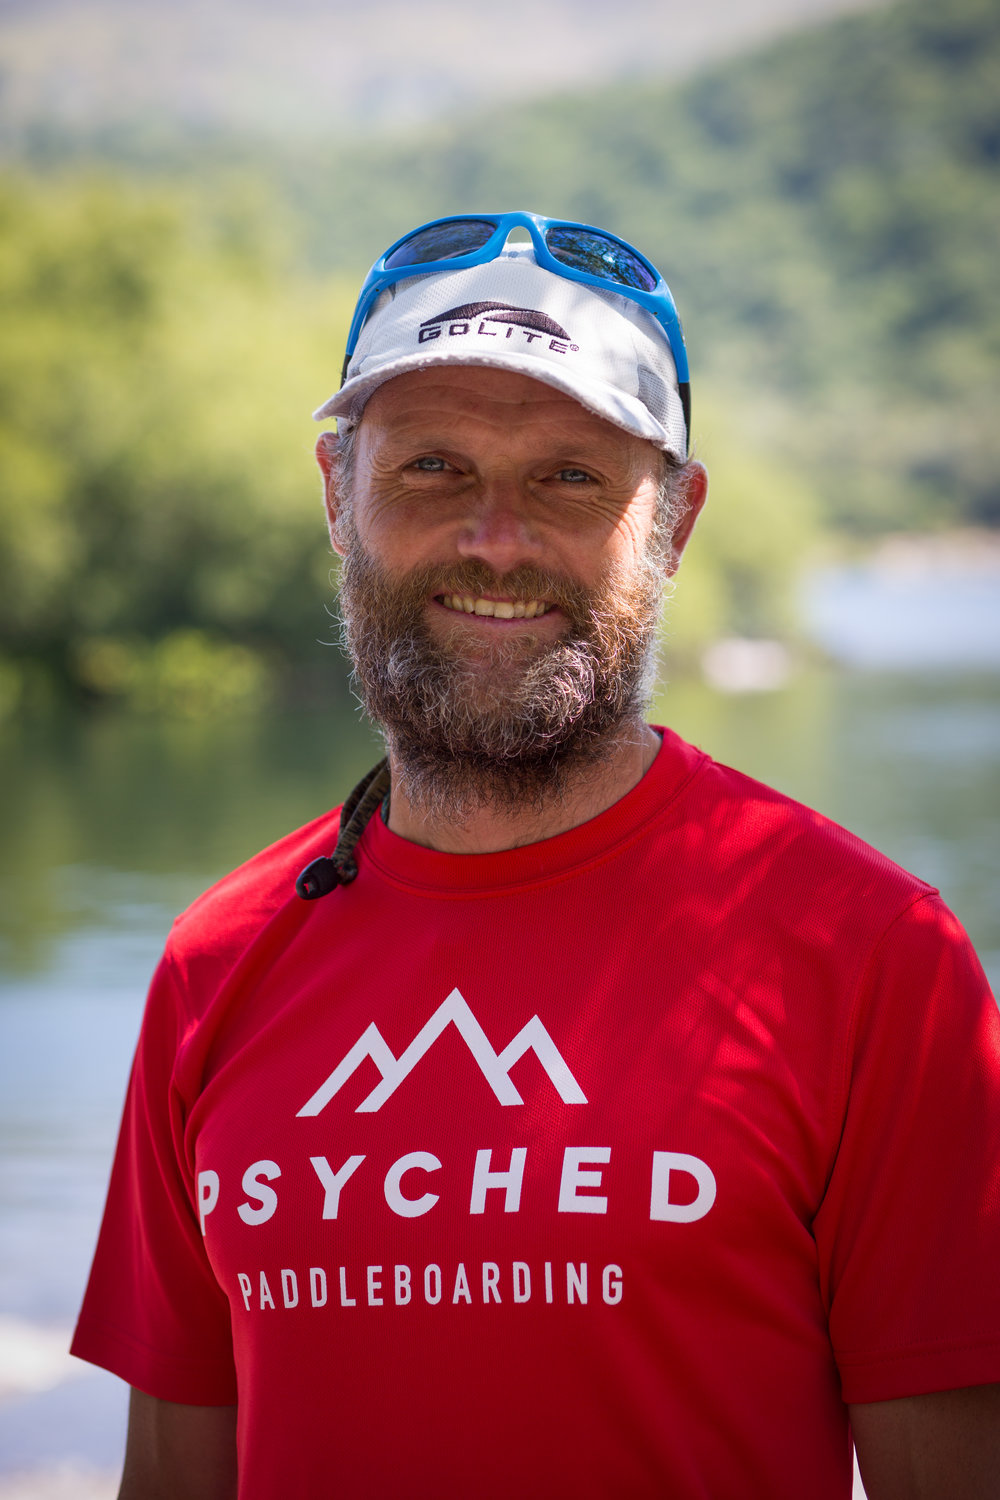 Dave Brown, Psyched Paddleboarding